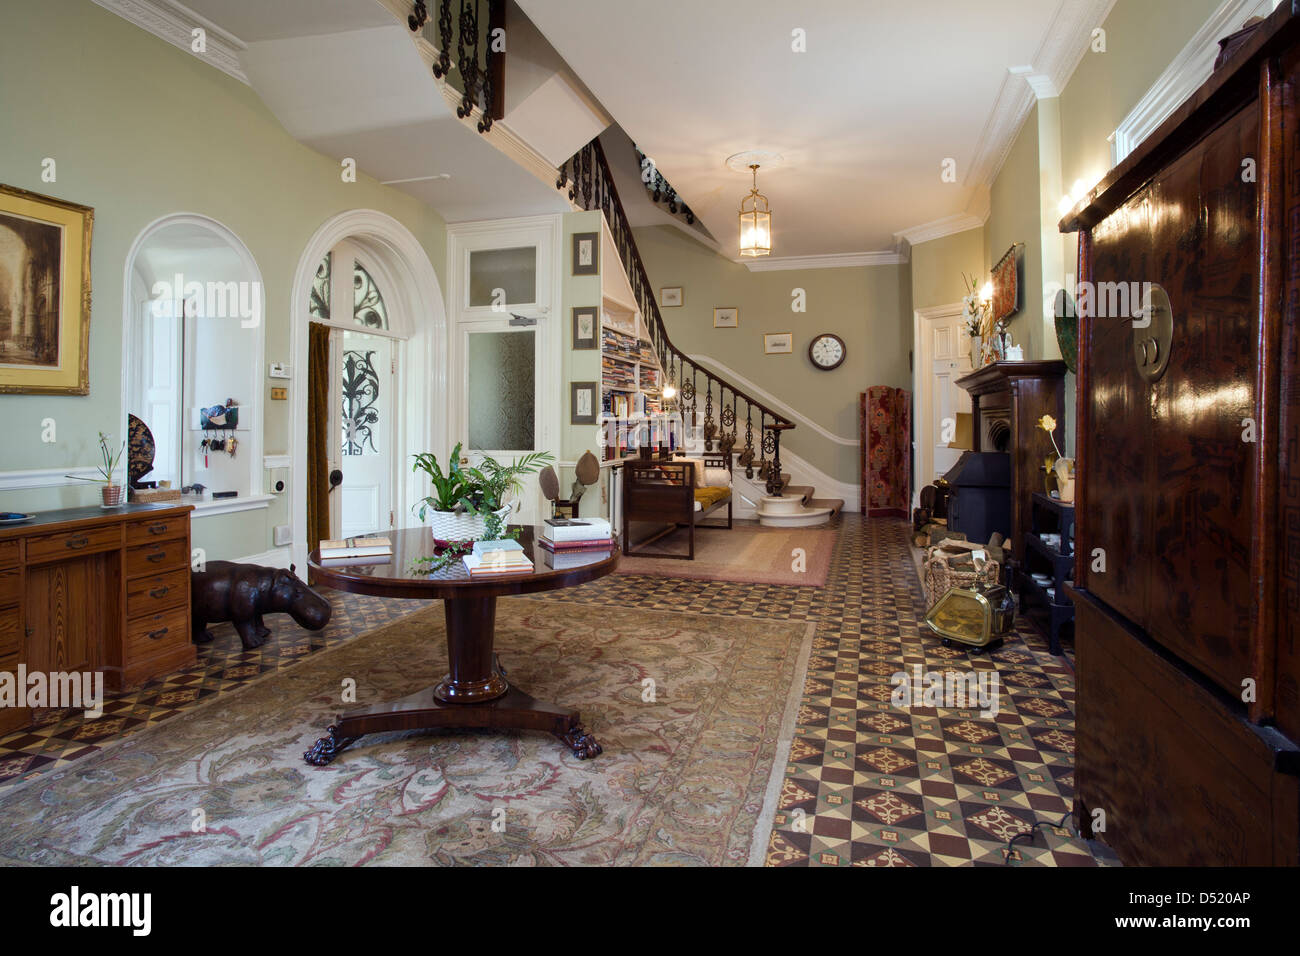 A large period entrance hall and stairs. - Stock Image